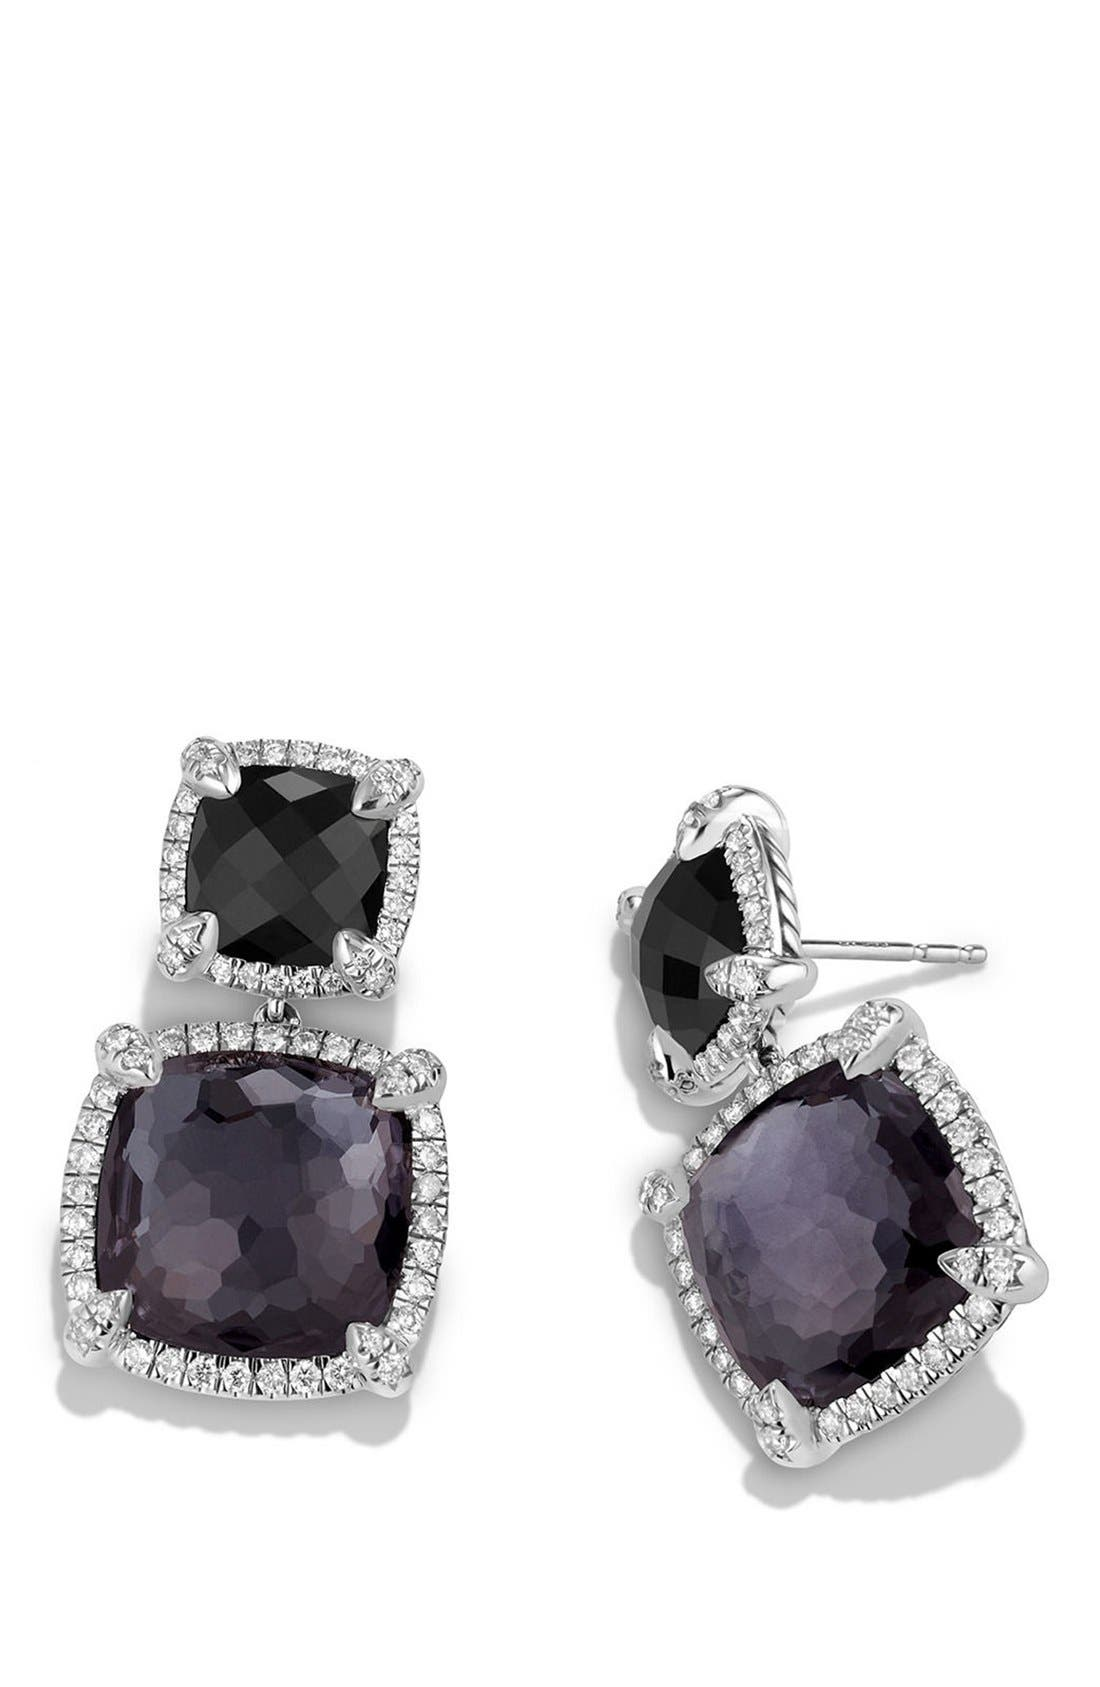 'Châtelaine' Pavé Bezel Double Drop Earrings with Diamonds,                             Alternate thumbnail 2, color,                             Black Onyx